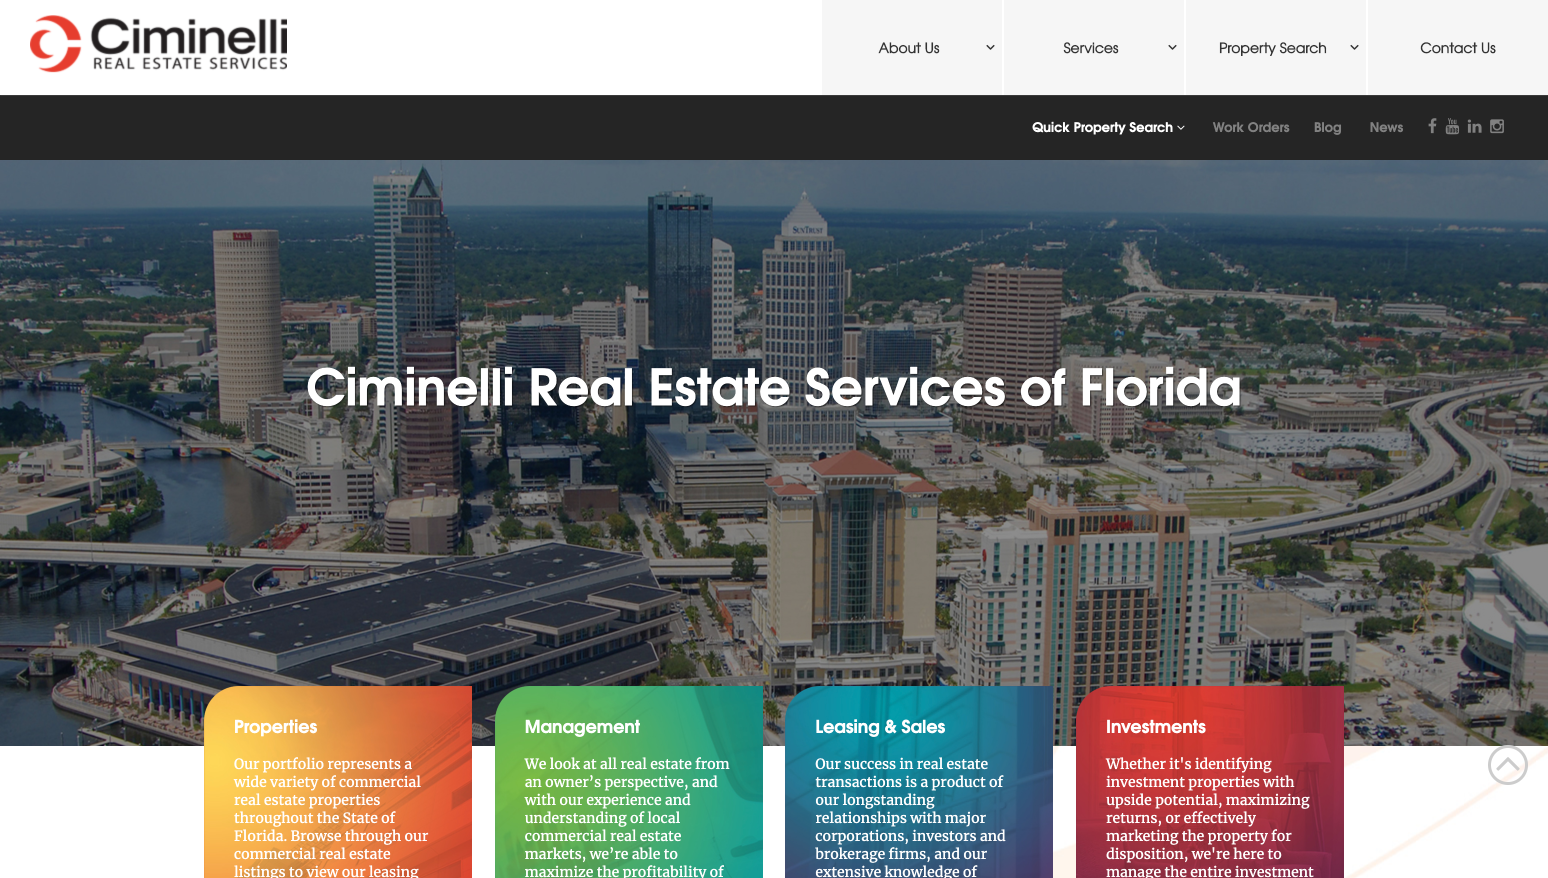 Ciminelli Real Estate Services of Florida